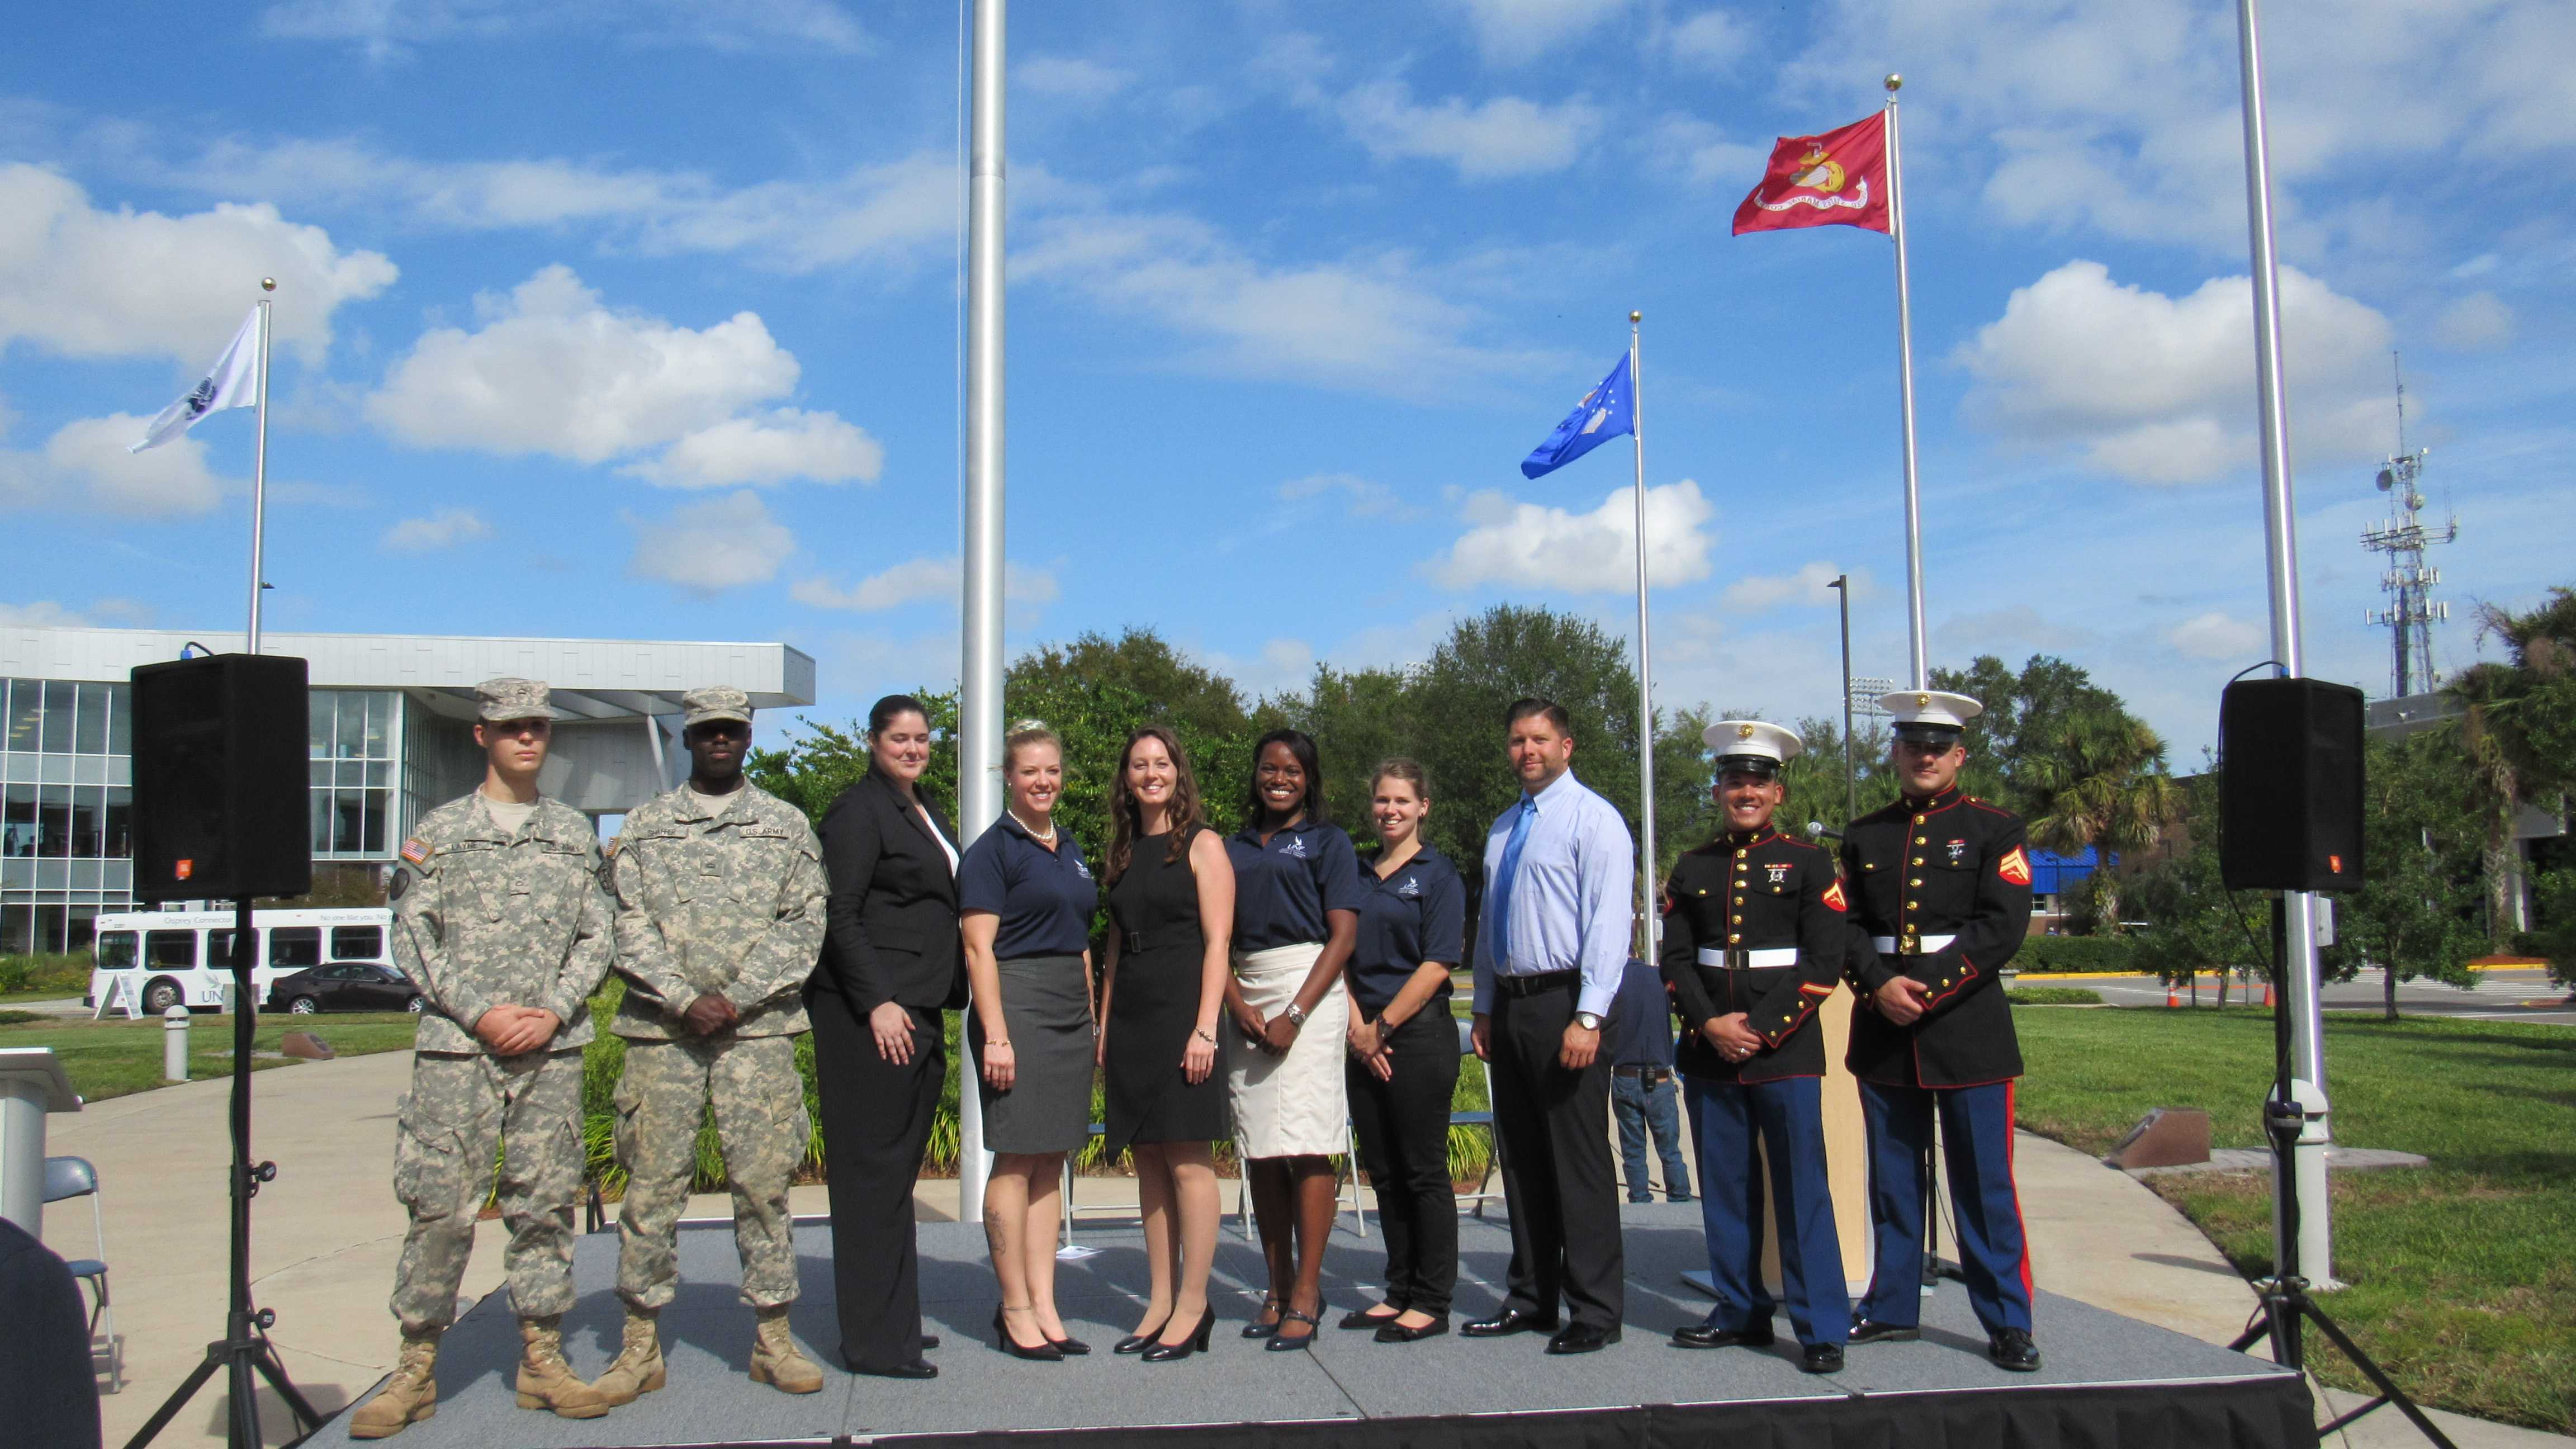 Services members honored with Veterans Plaza dedication